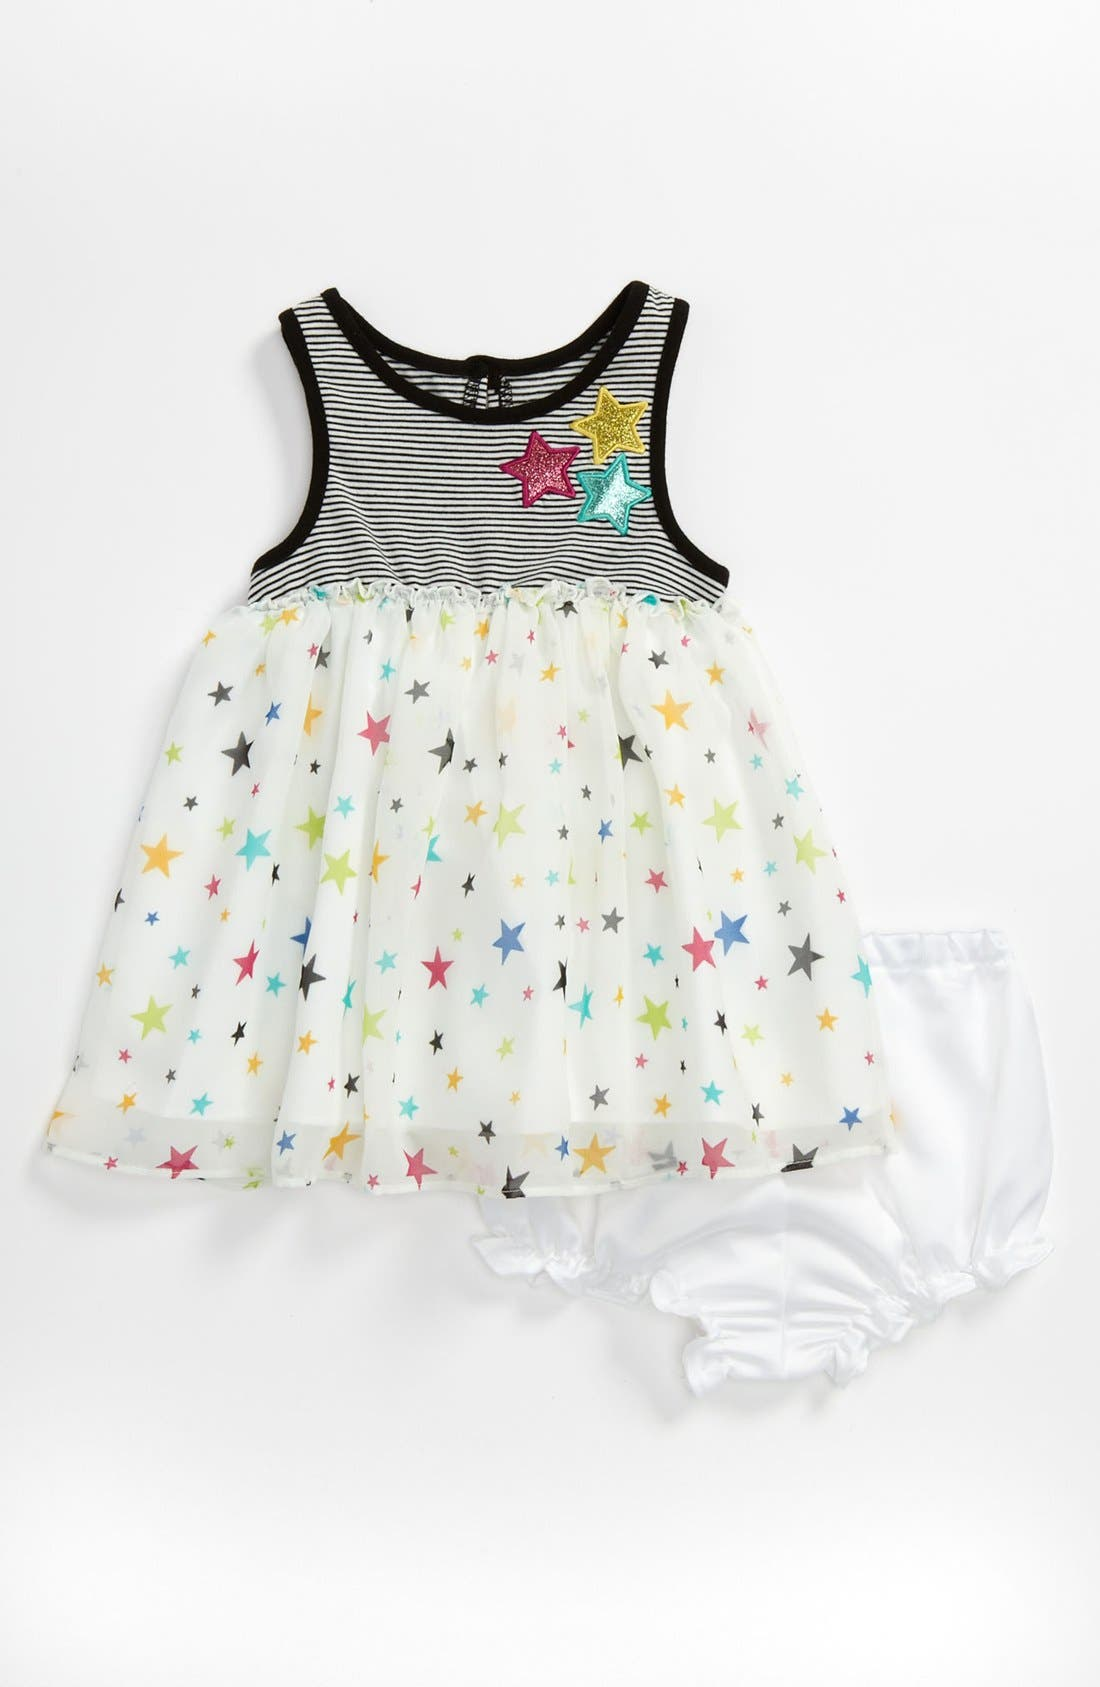 Alternate Image 1 Selected - Pippa & Julie 'Star' Dress & Bloomers (Baby)